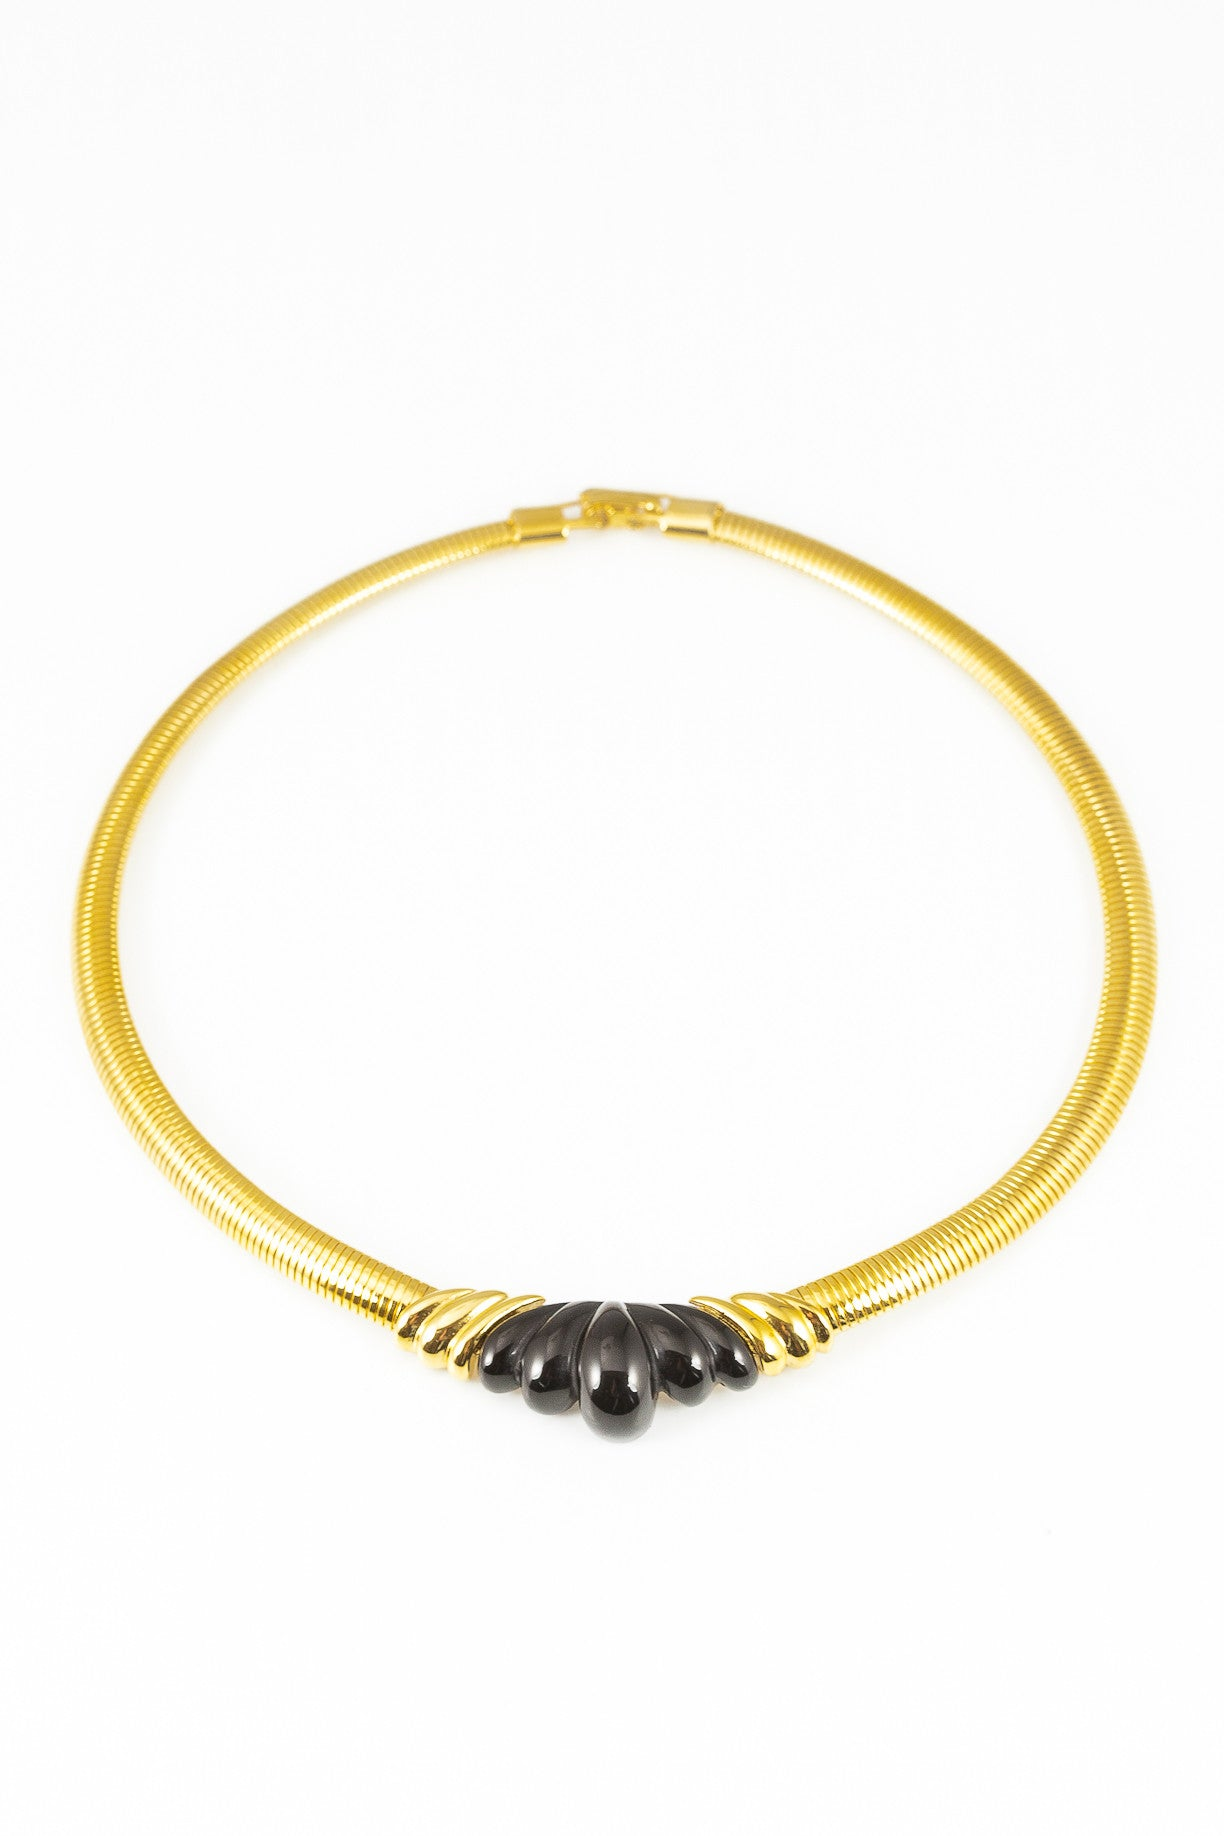 80's__Napier__Black Scalloped Statement Bar Necklace